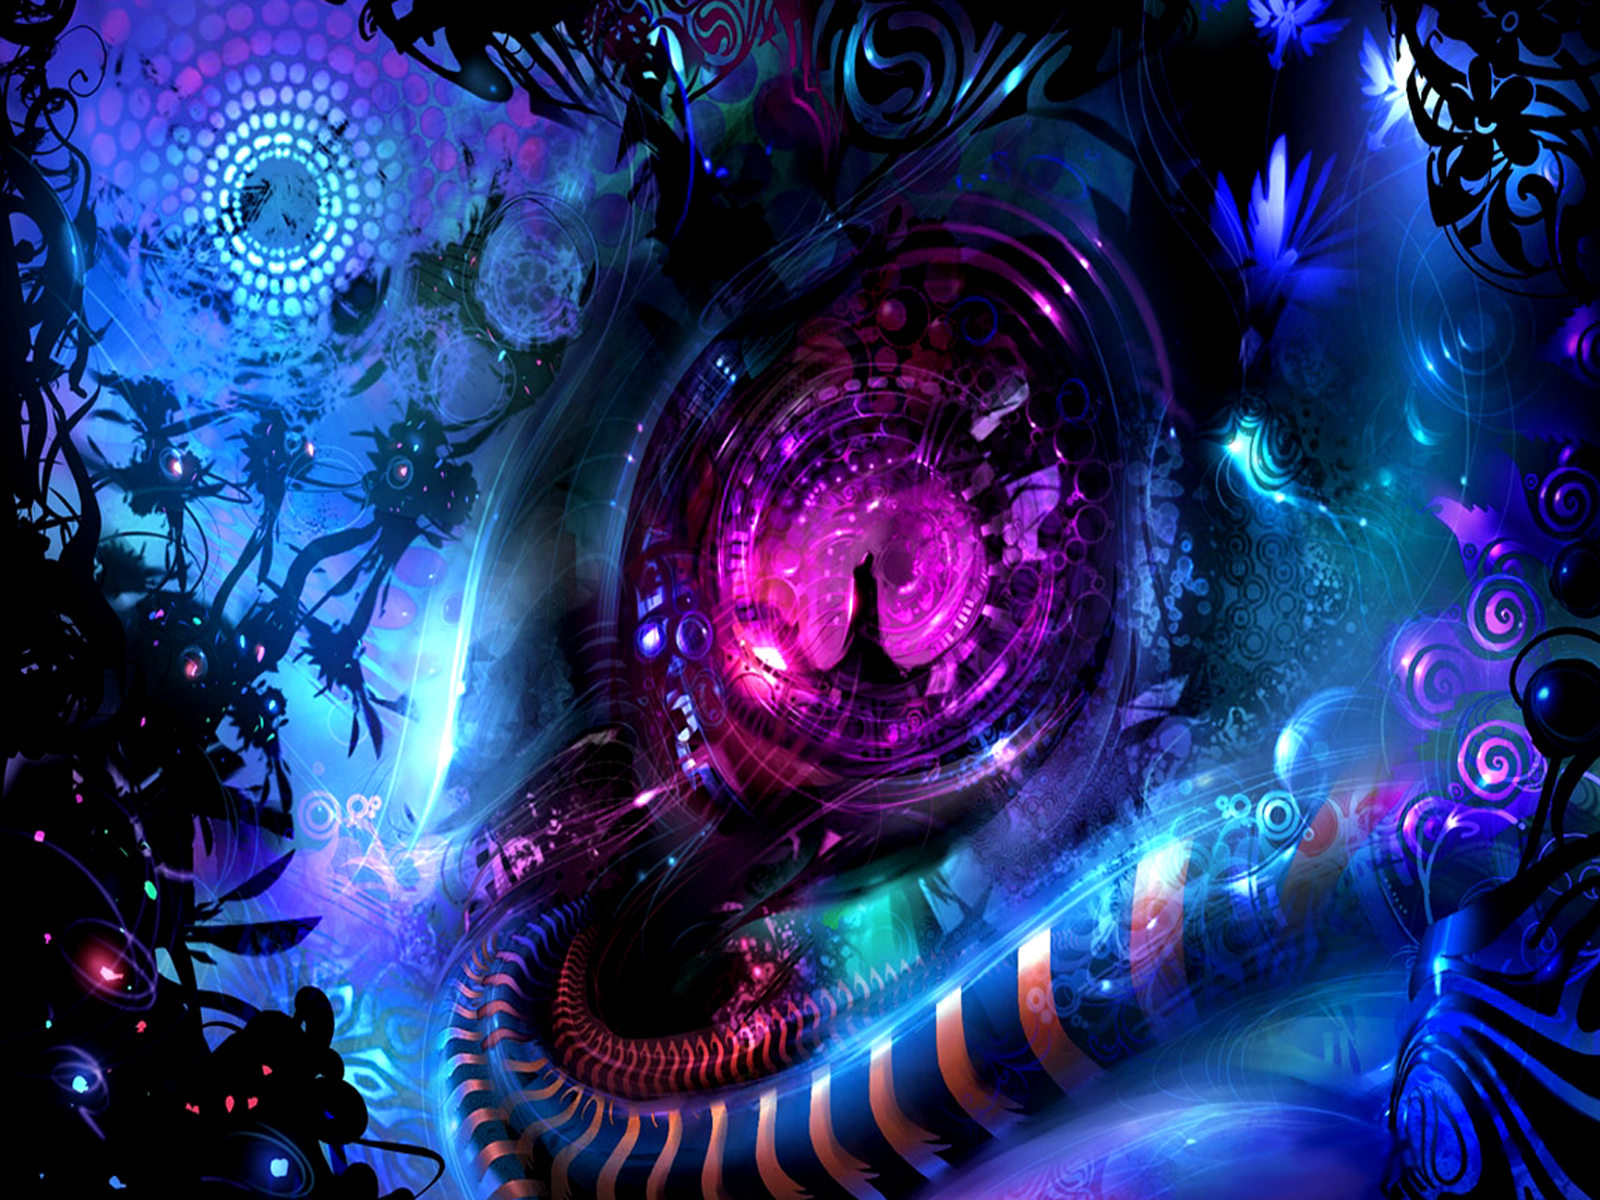 New Art Funny Wallpapers Jokes: Sci Fi Abstract Wallpapers